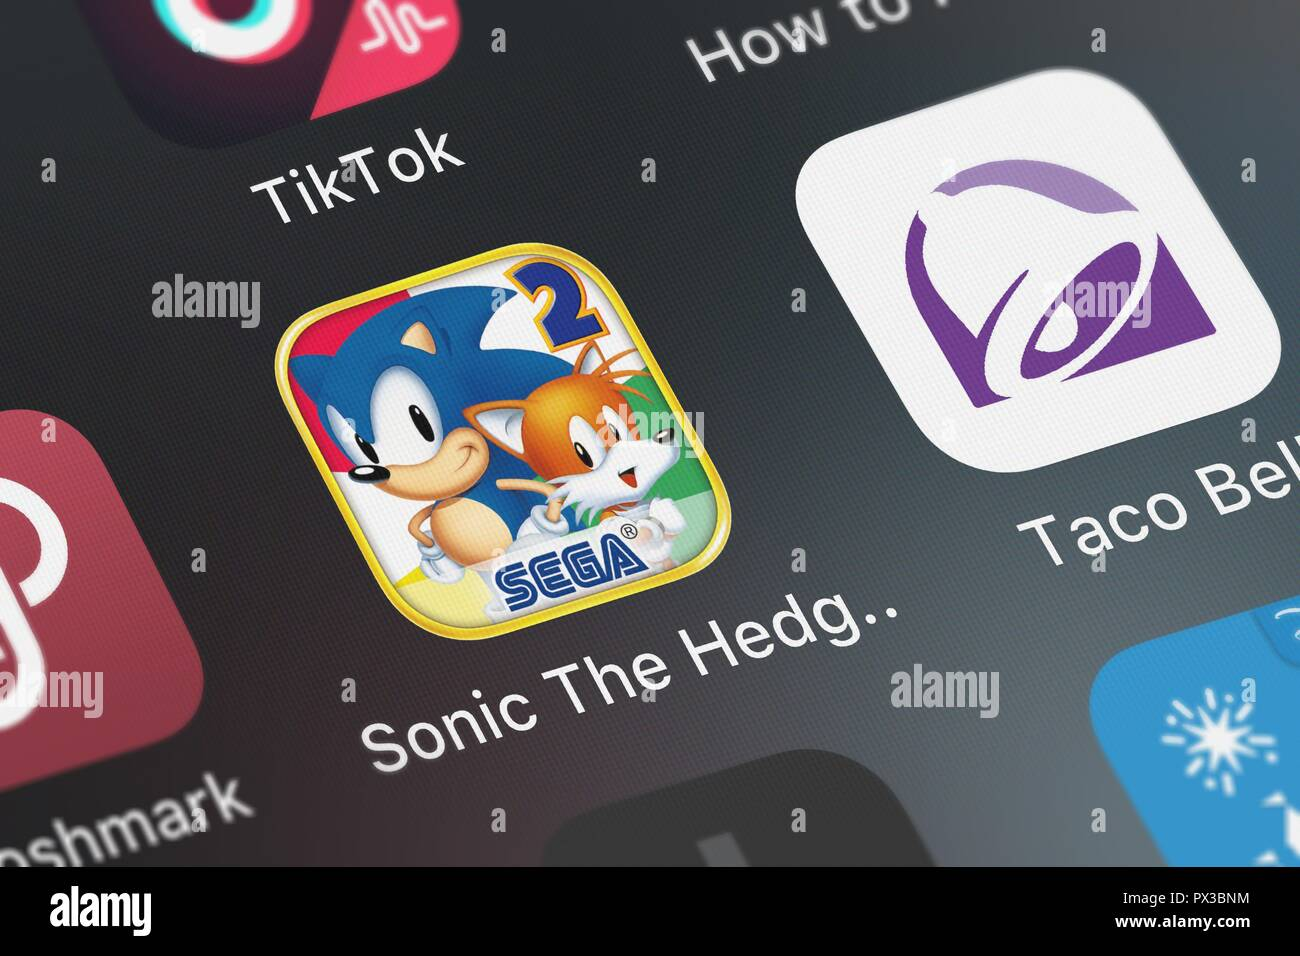 Sonic The Hedgehog Classic High Resolution Stock Photography And Images Alamy